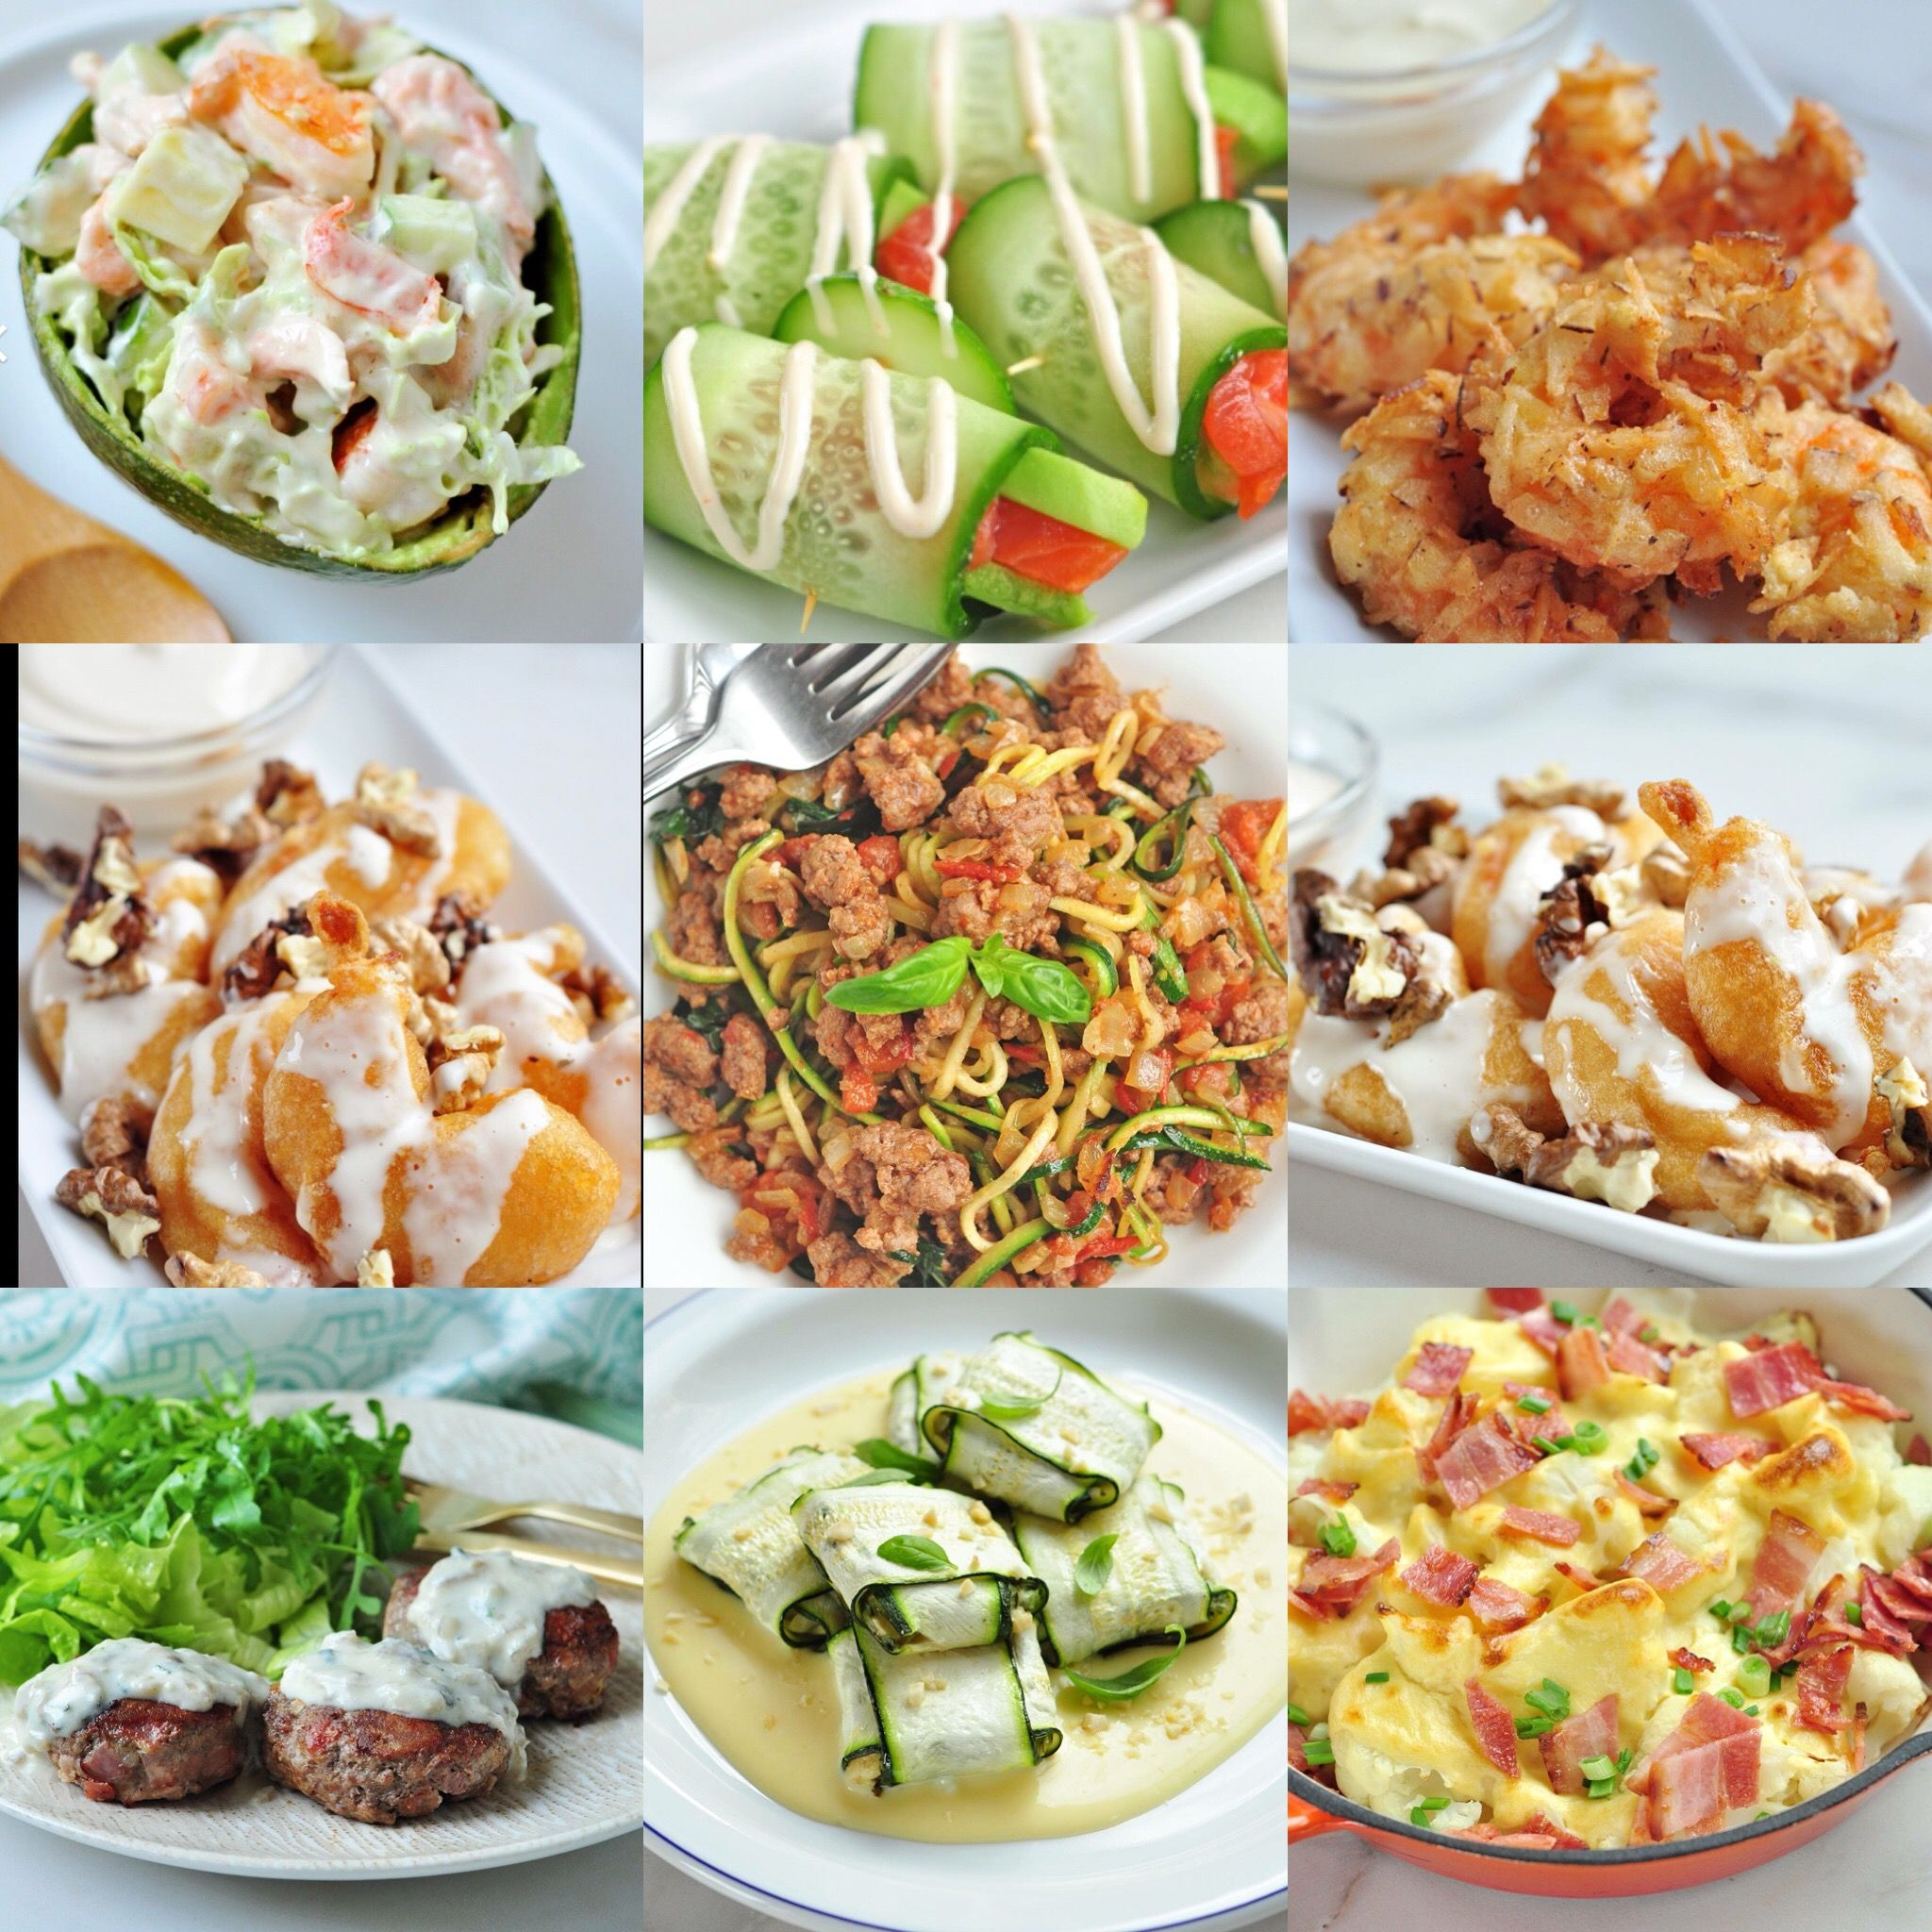 Recipes from the 28 Day Build Your Day Plans | Ketogenic Girl 28 Day Challenge Meals in 2019 ...